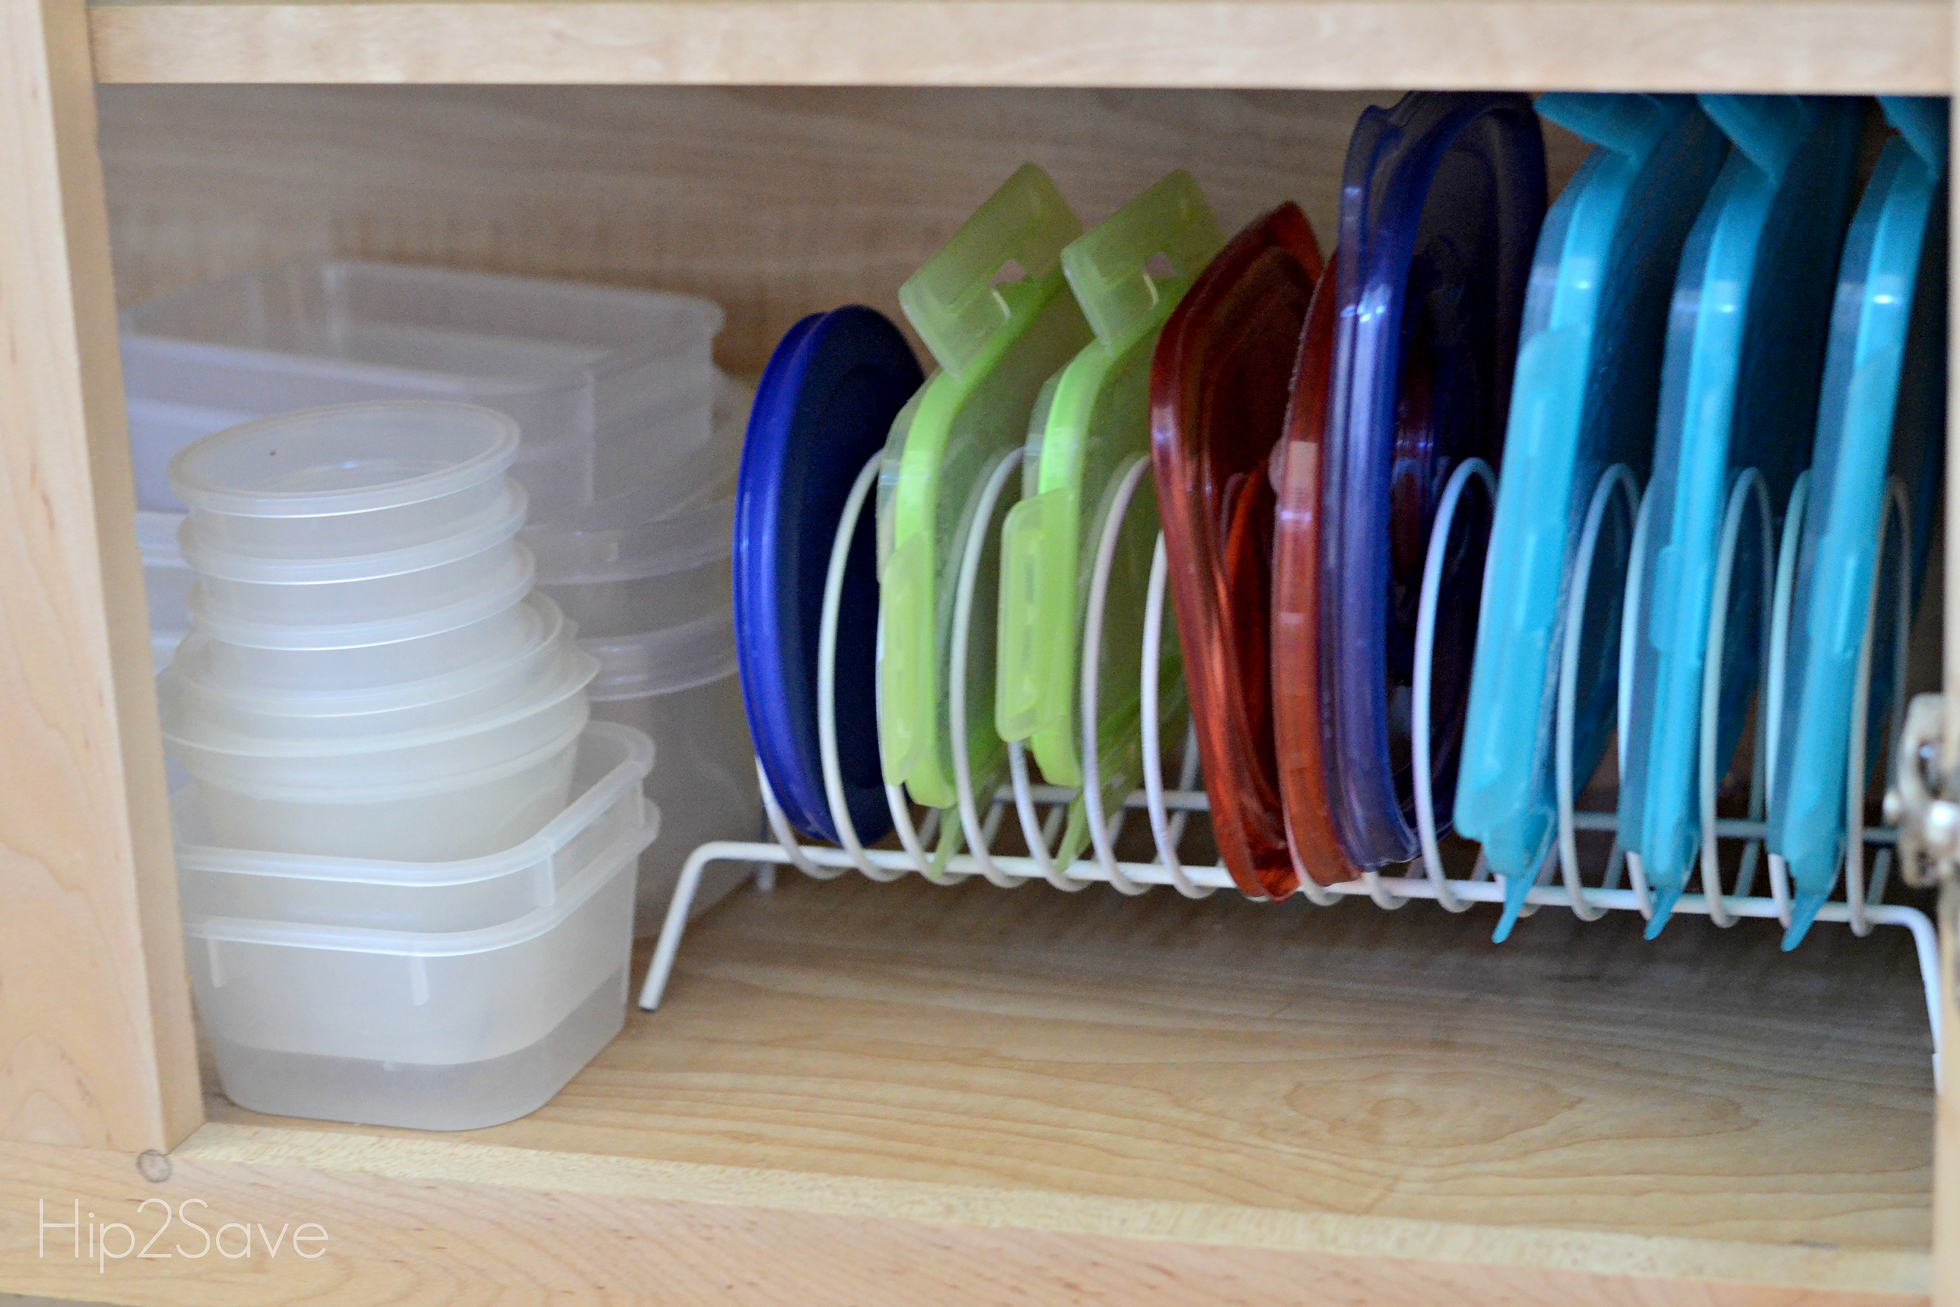 Tupperware lids stored in a CD holder